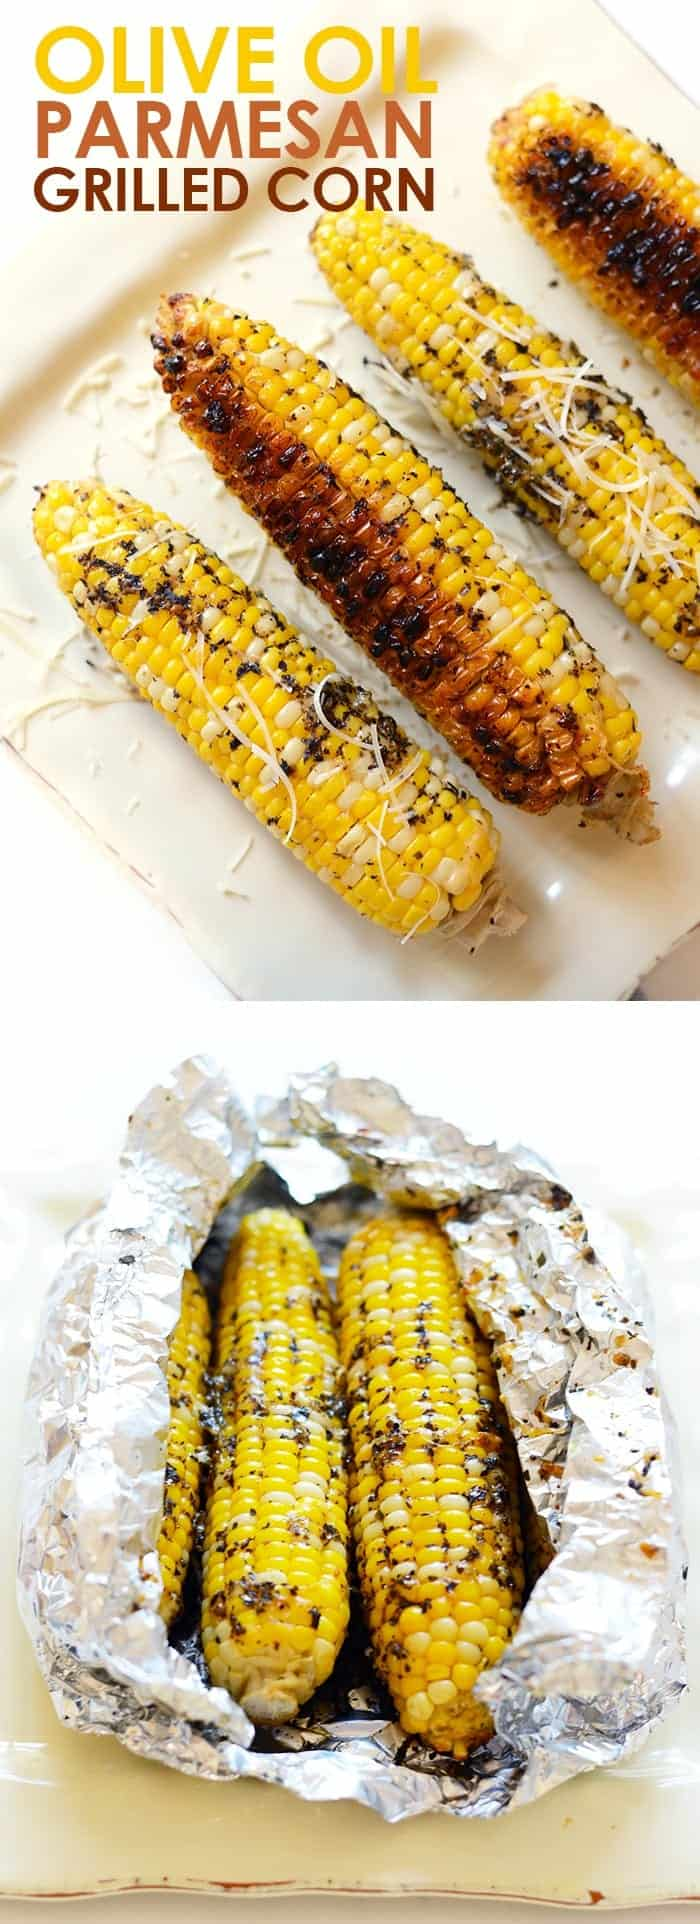 Fully cooked olive oil parmesan grilled corn.